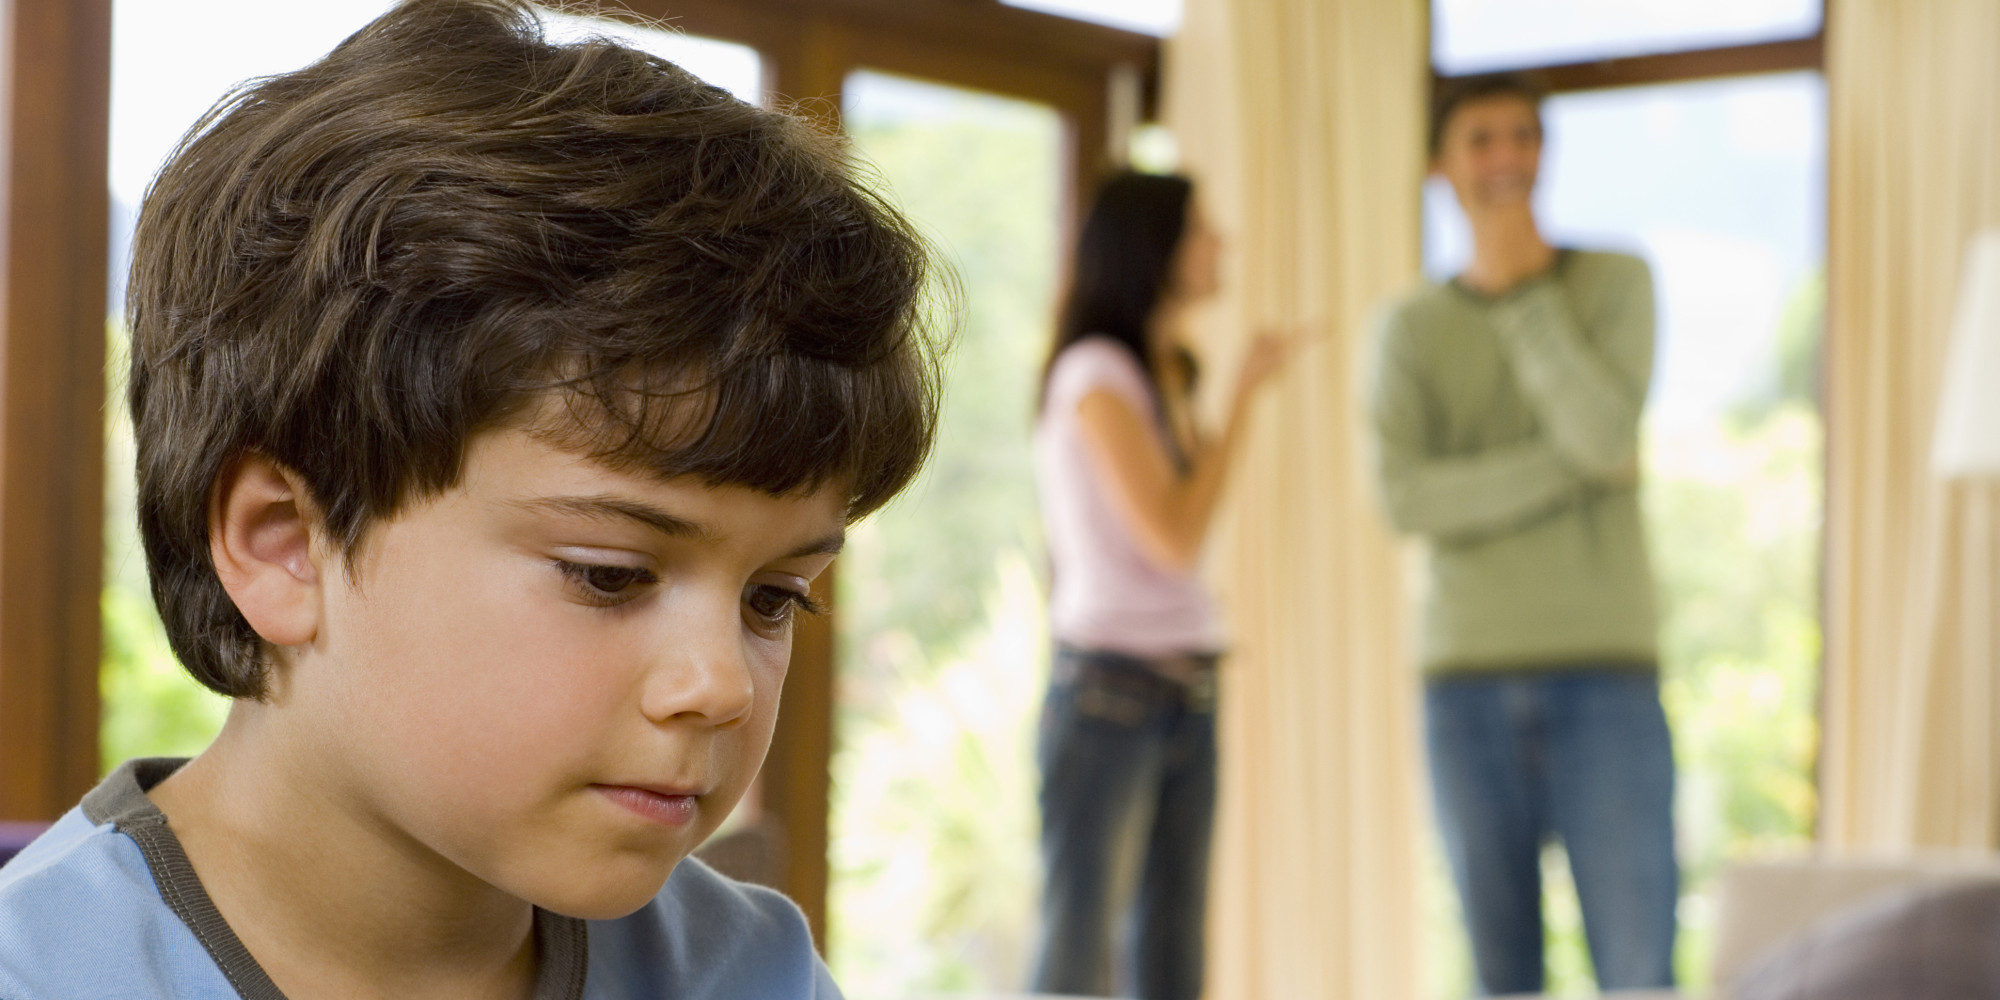 7 Ways Divorce Affects Kids According To The Kids Themselves